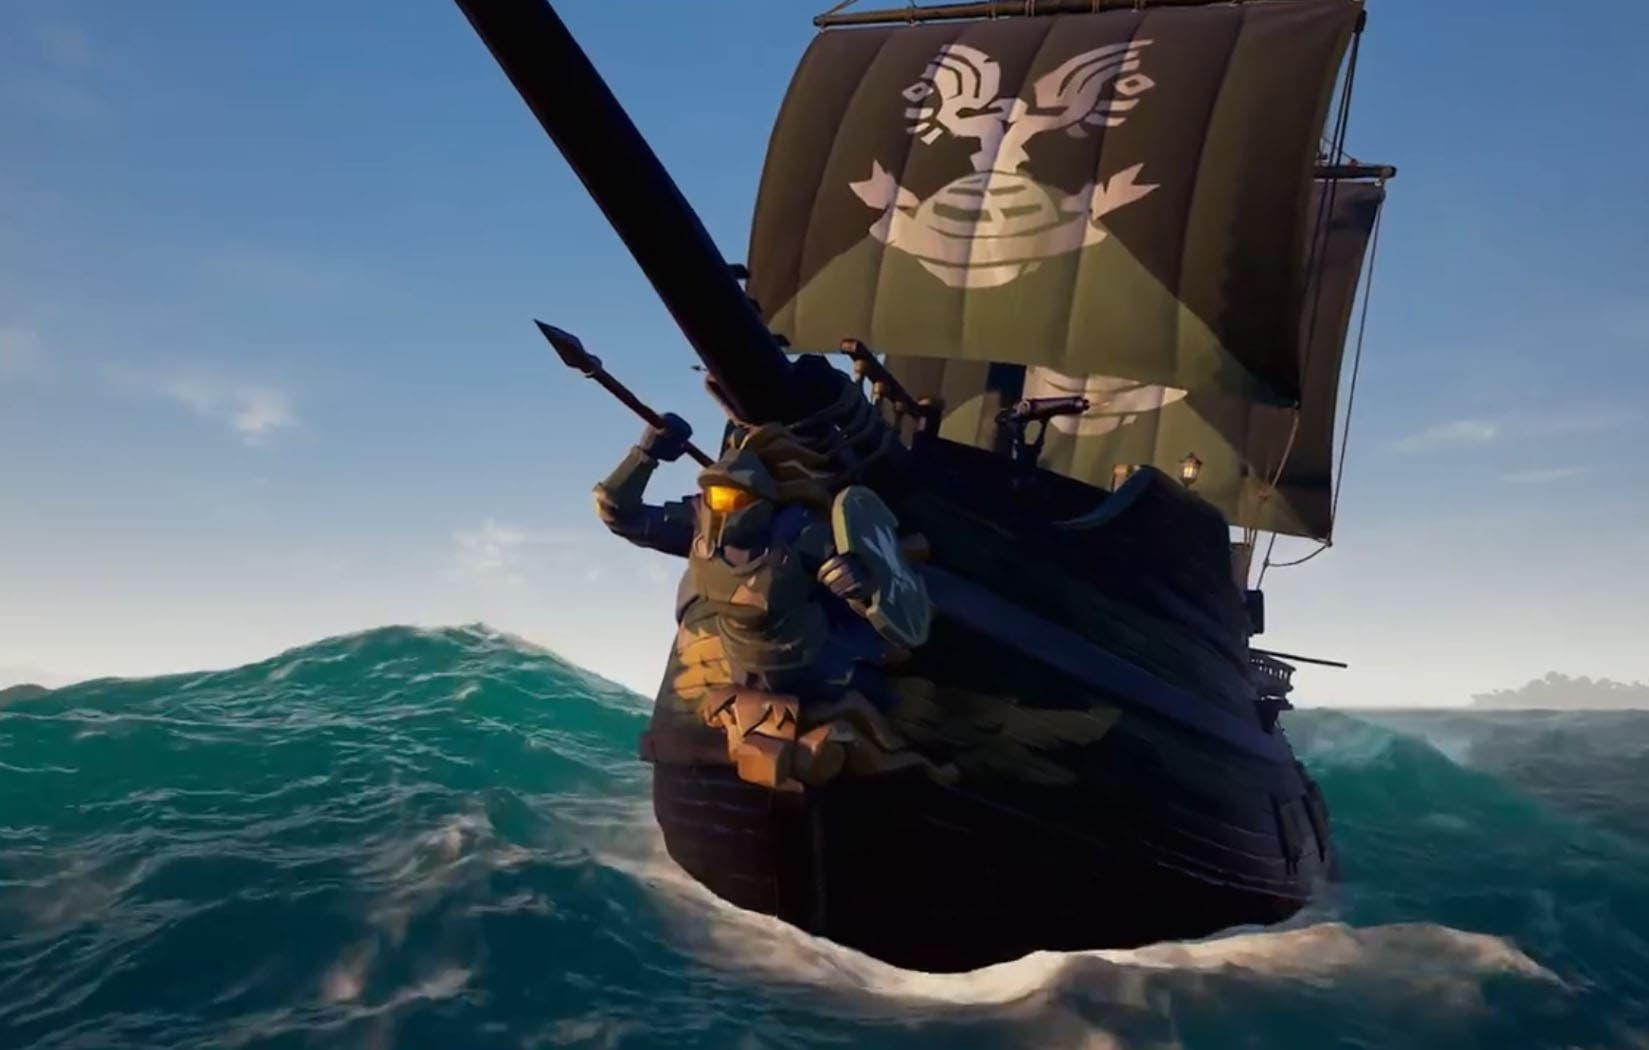 Sea of Thieves anticipa la llegada de actualizaciones por temporadas con Plunder Pass 1